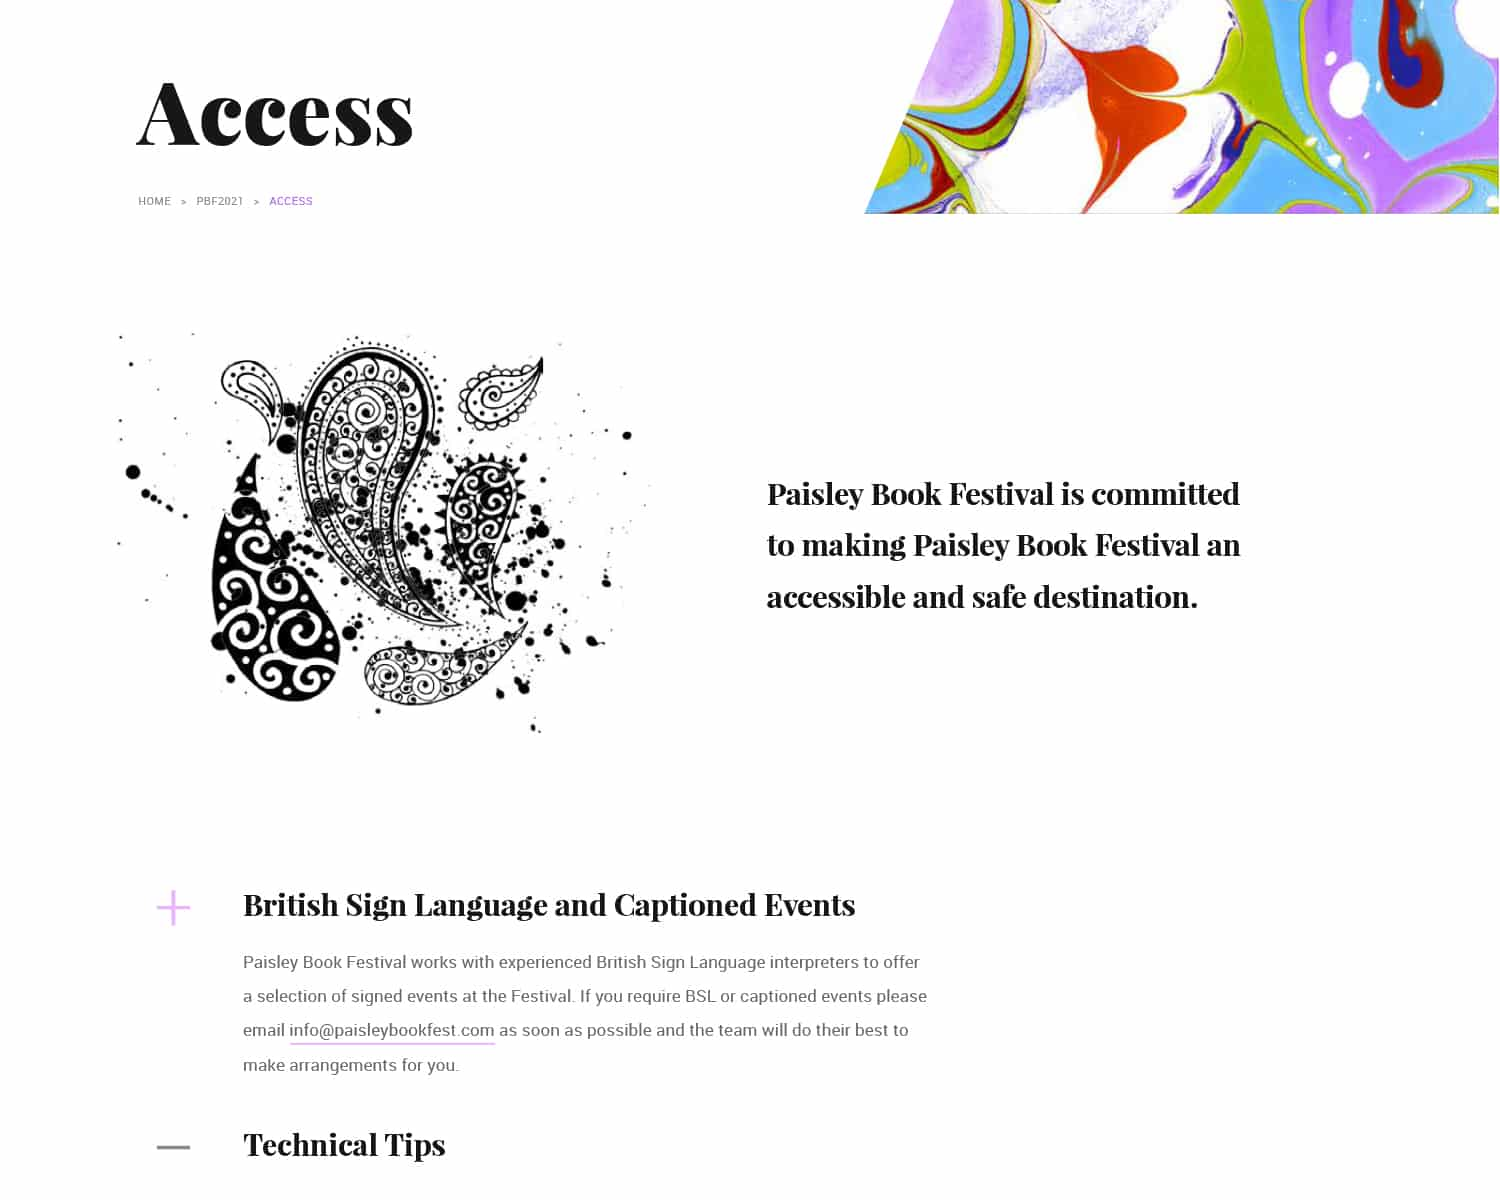 Accessibility design for Paisley Book Festival 2021 website